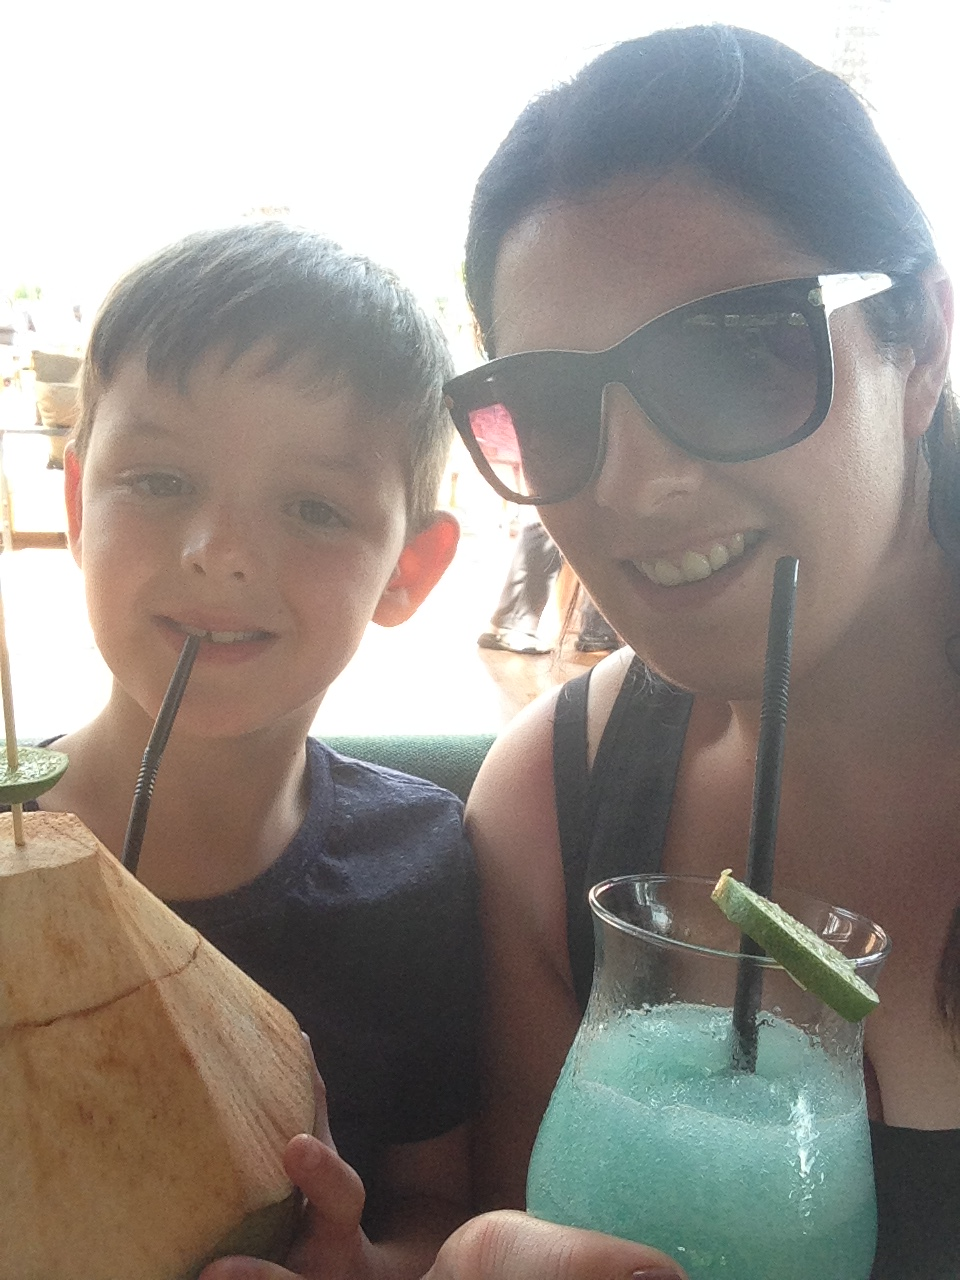 Jack and his coconut. Me and my 'grown up blue drink'